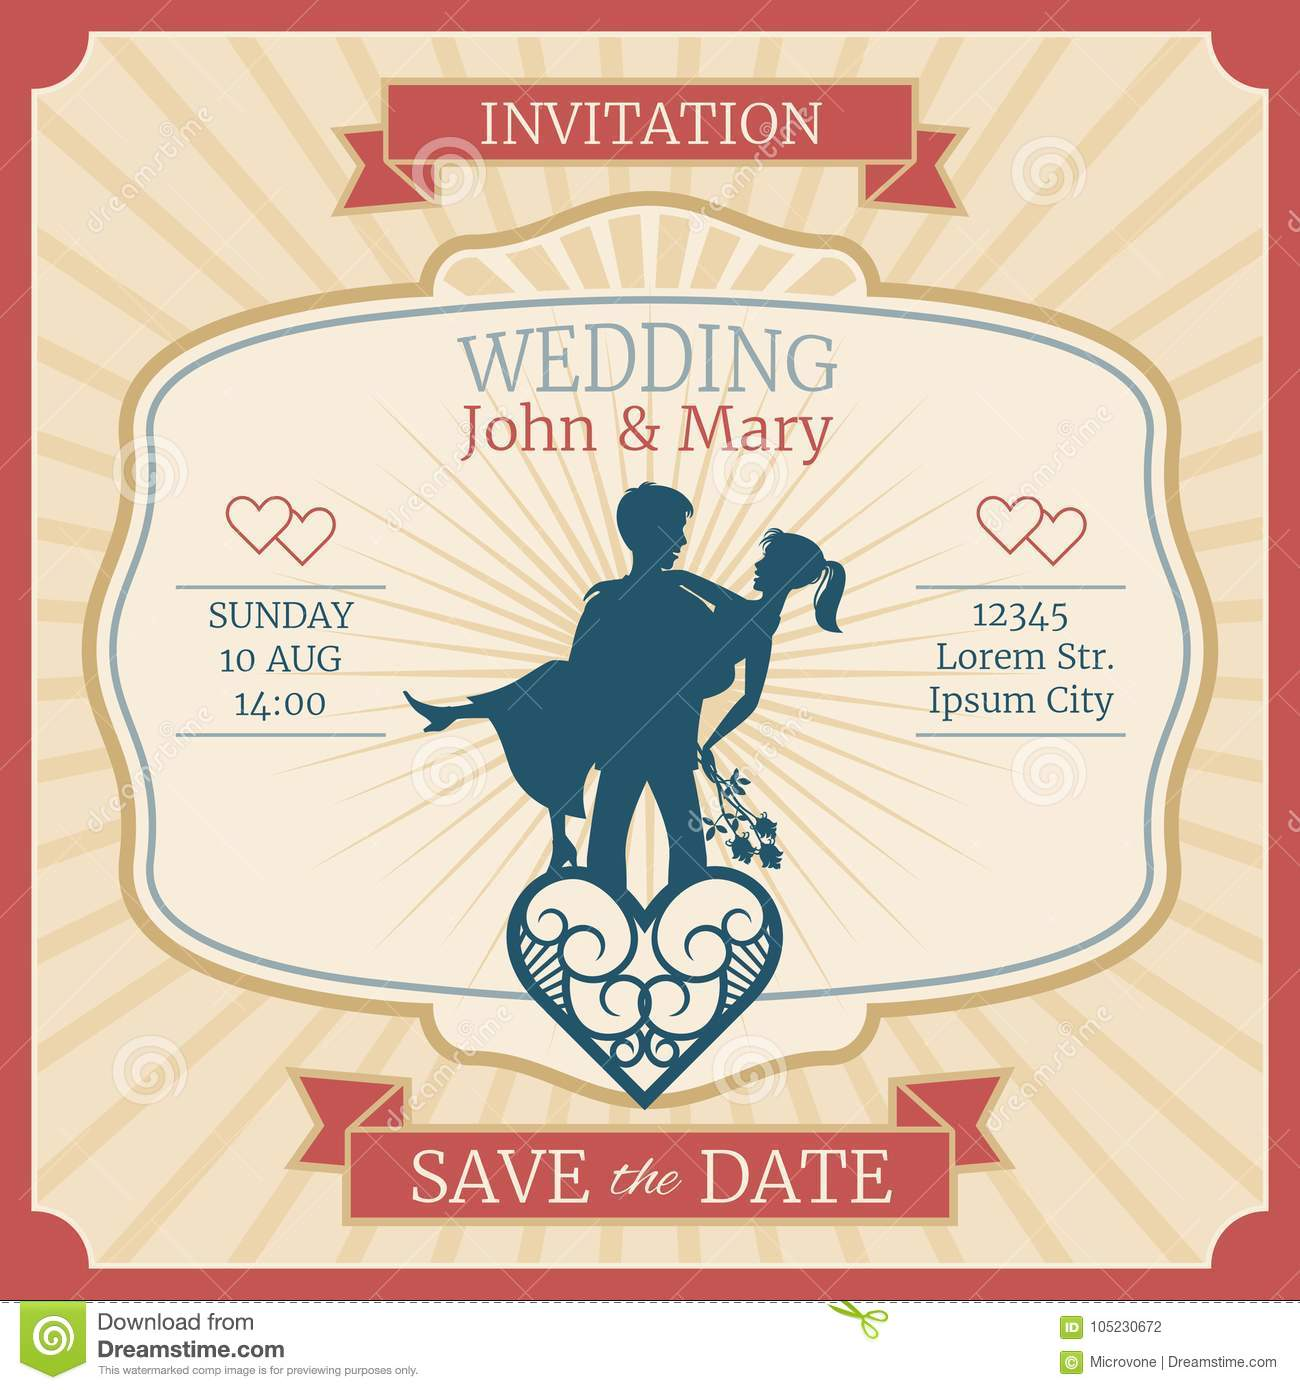 Wedding vector invitation card with just married bride and groom wedding vector invitation card with just married bride and groom silhouettes illustration of invitation wedding card stopboris Choice Image